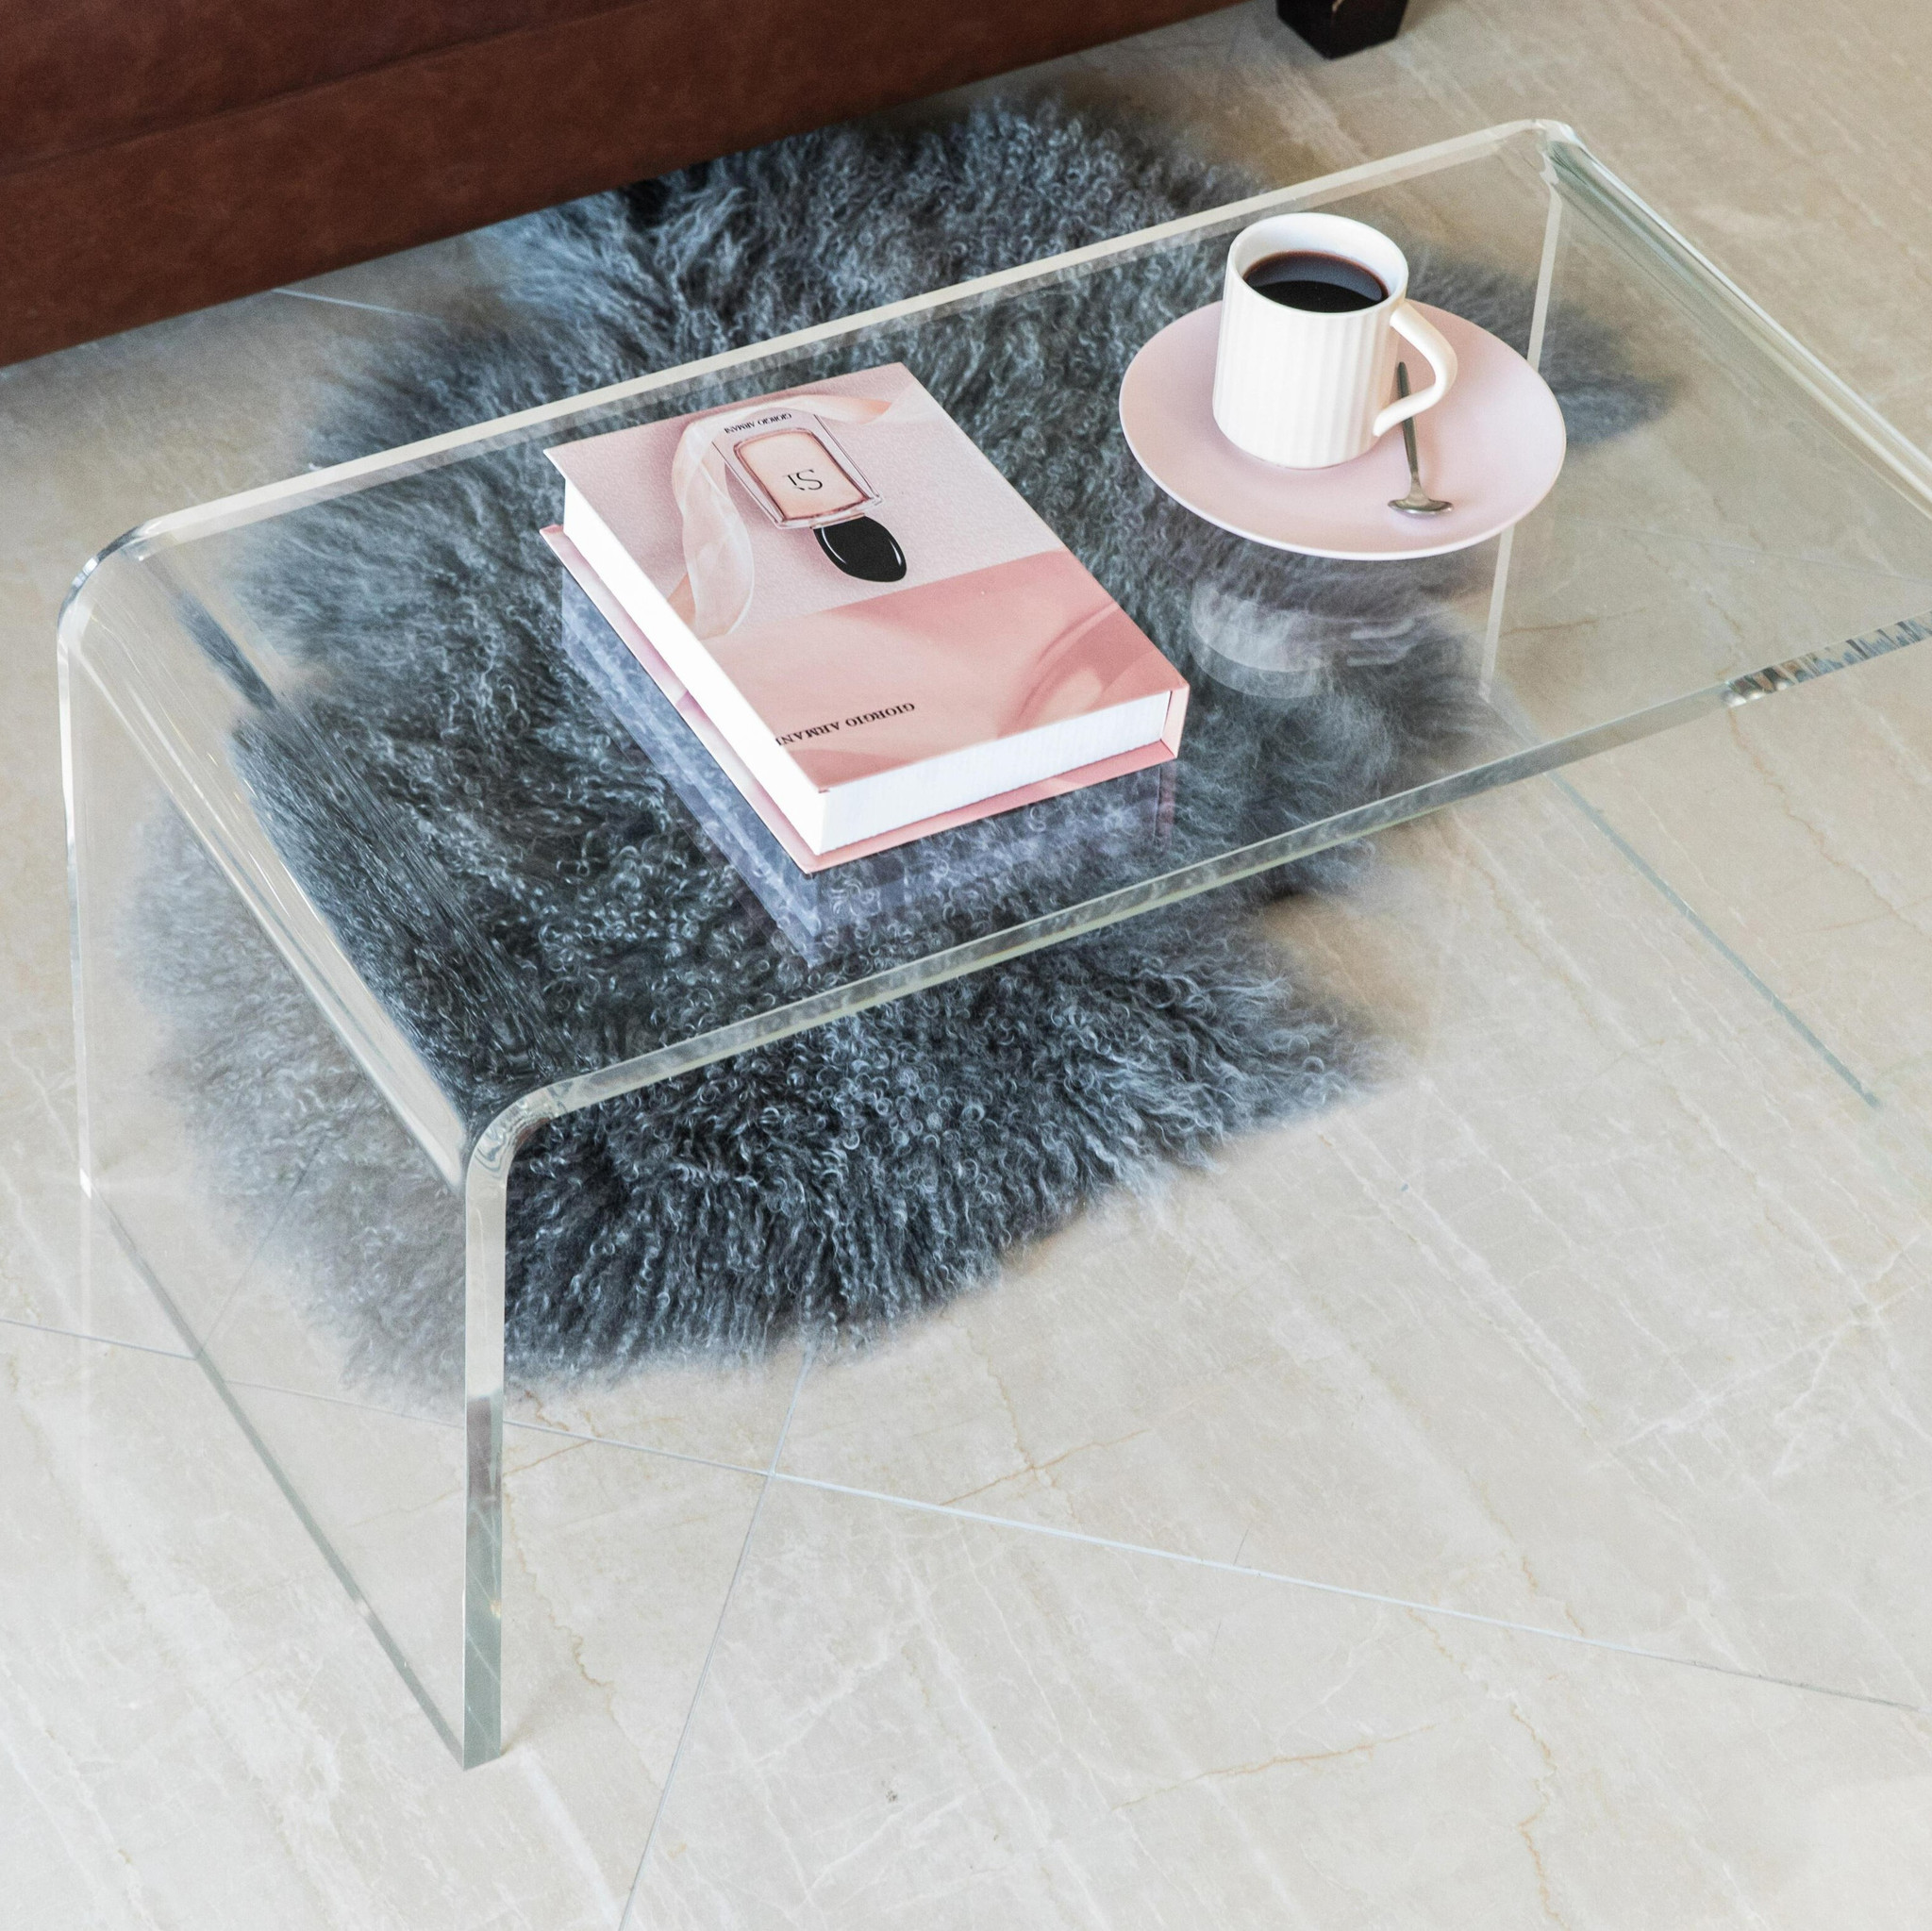 clear acrylic lucite bench retro vintage look with waterfall rounded edge shape